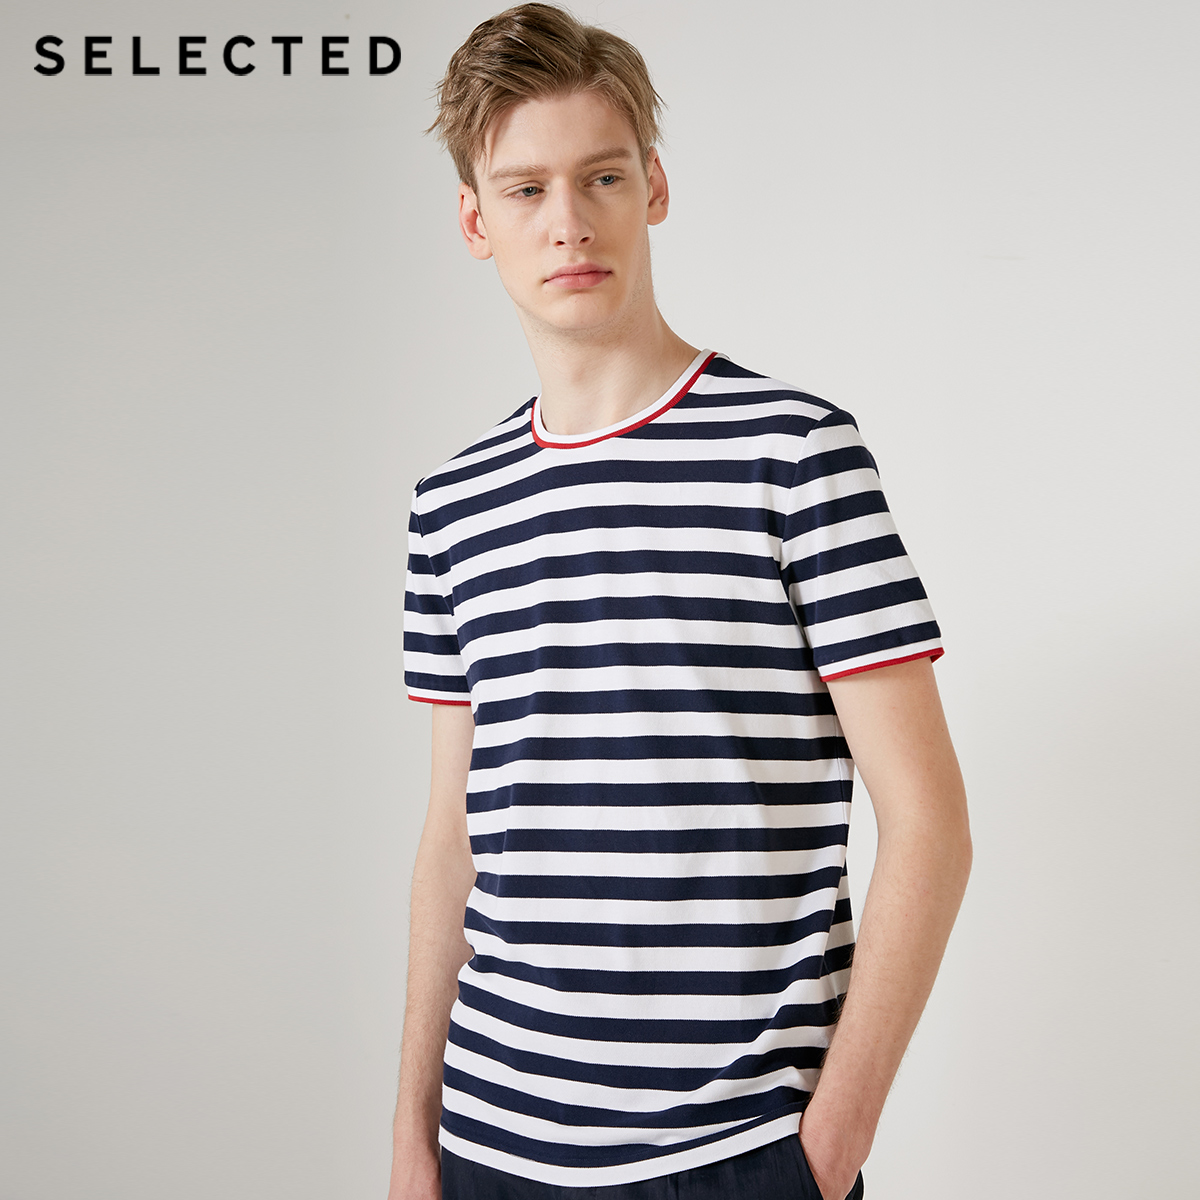 SELECTED Men's Cotton Round Neckline Striped Short-sleeved T-shirt S|419201624